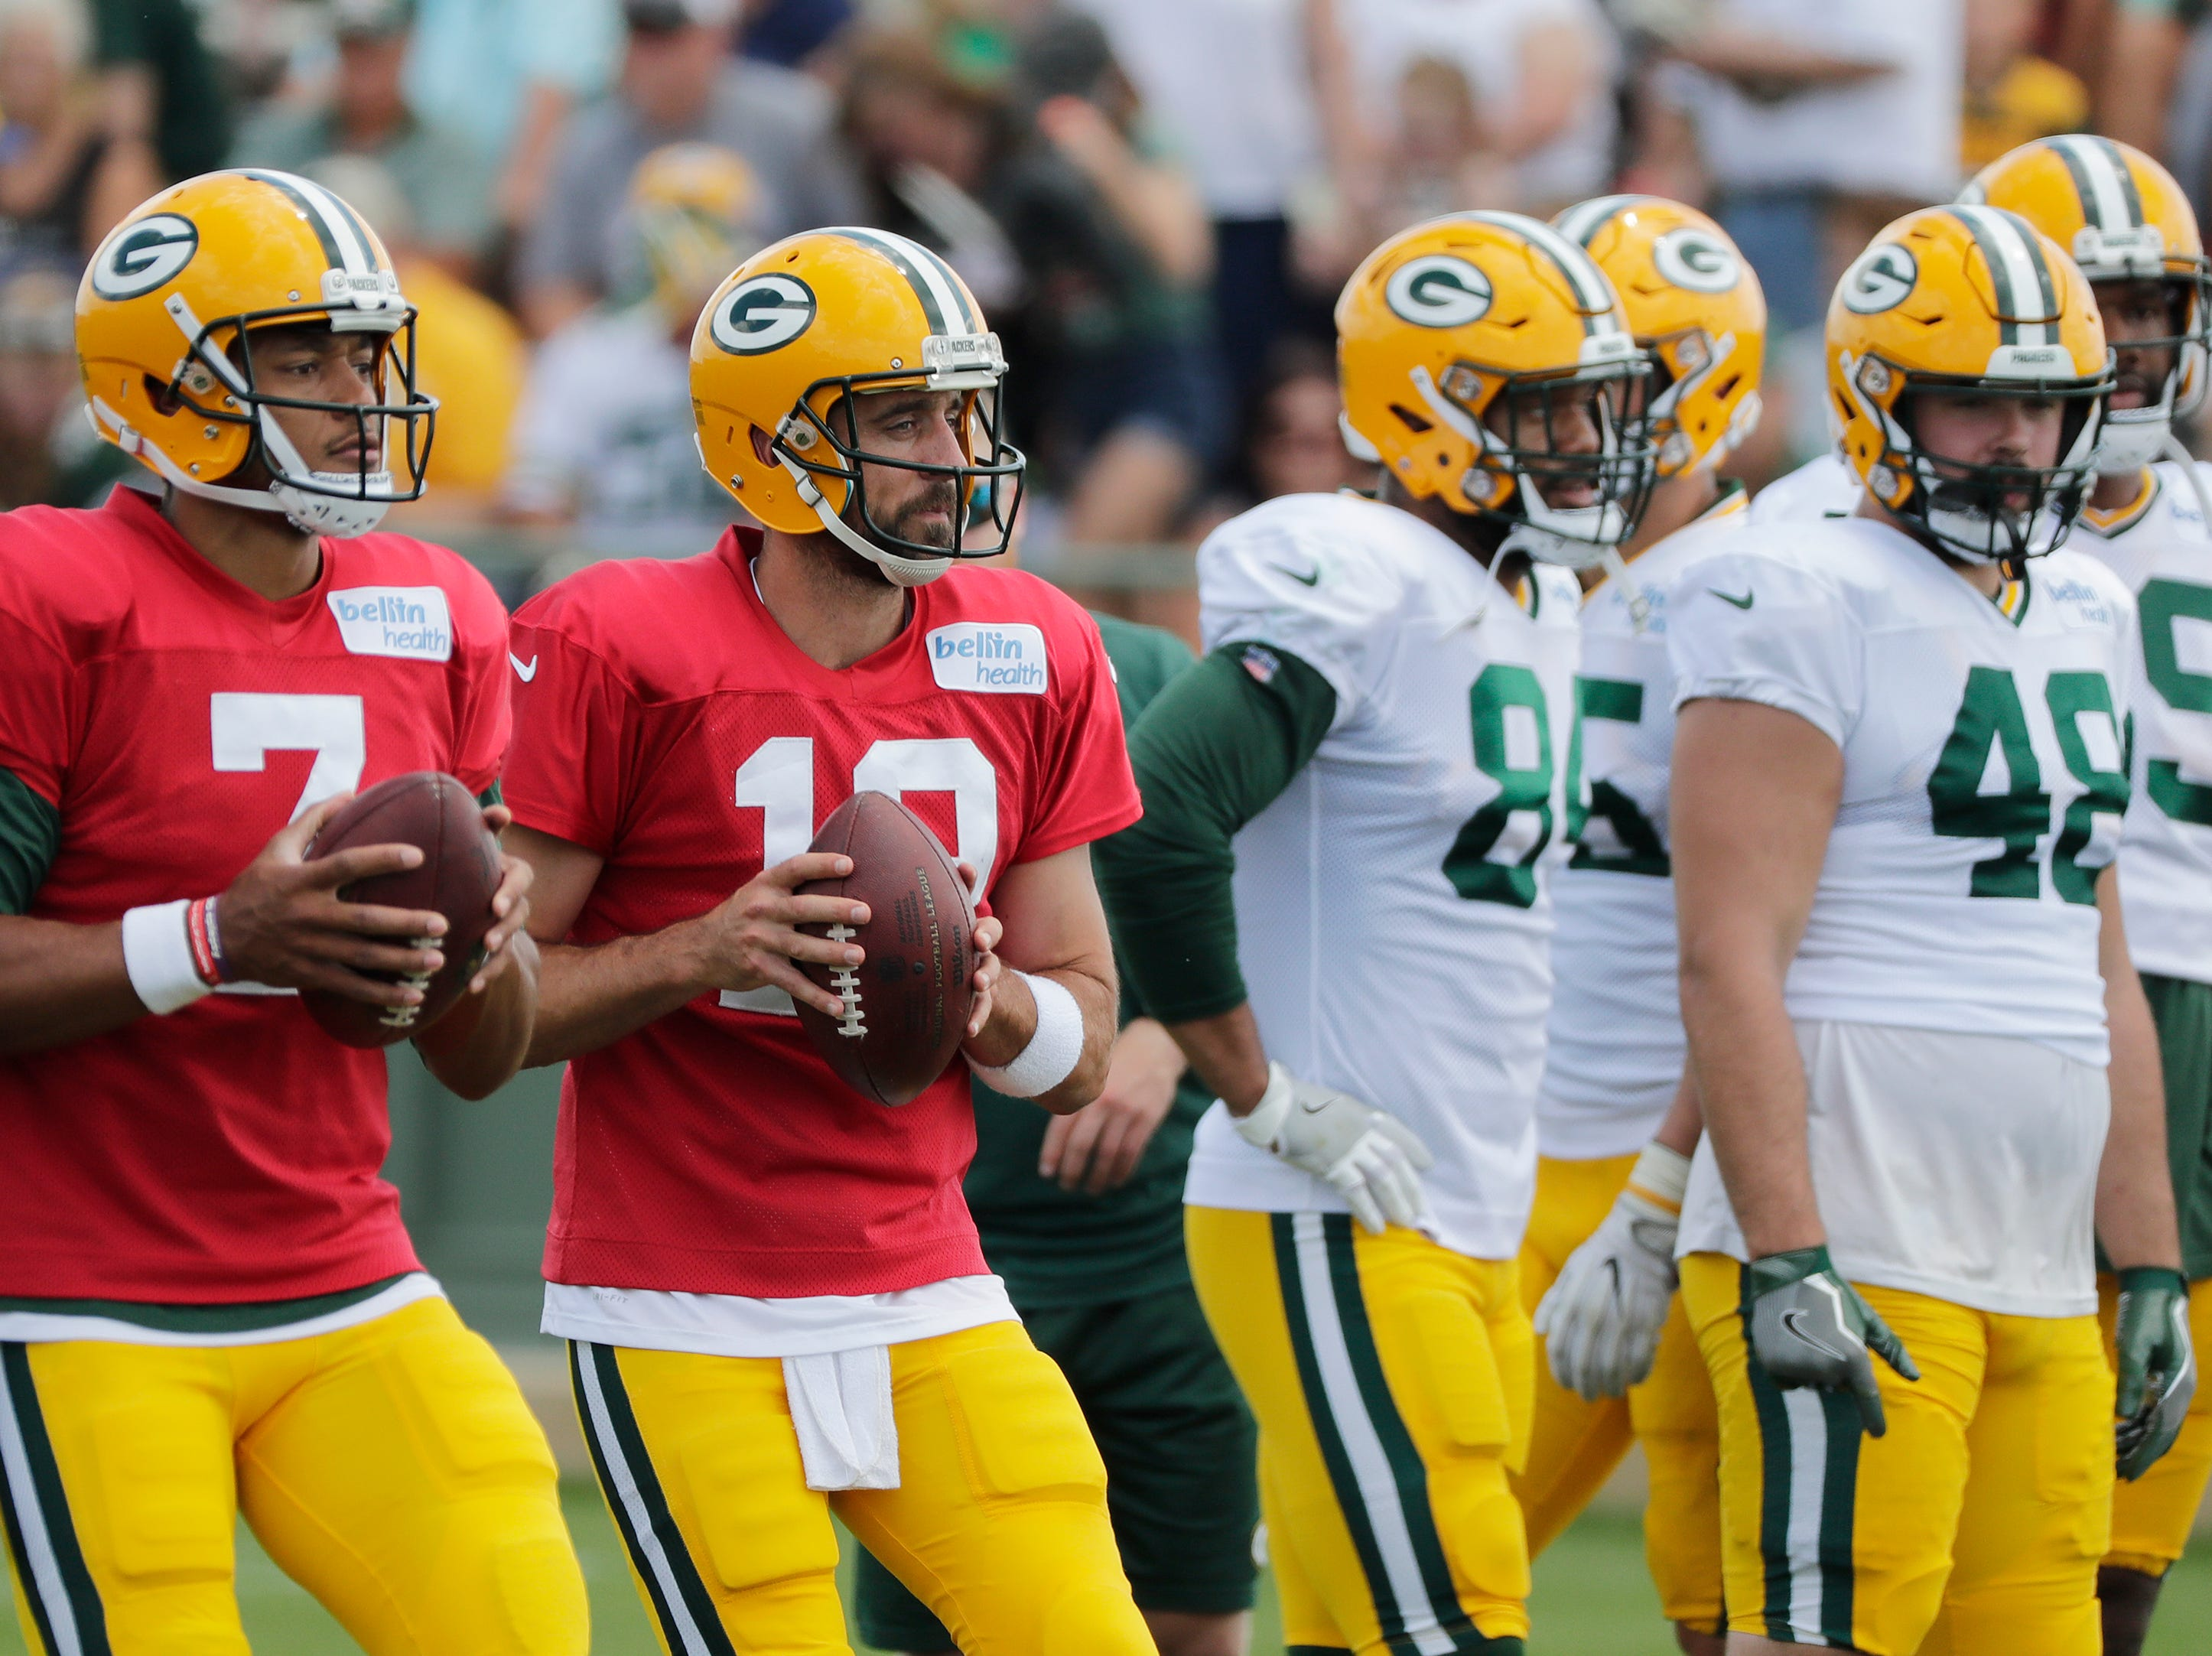 Green Bay Packers quarterbacks Brett Hundley (7) and Aaron Rodgers (12) drop back to pass during training camp practice at Ray Nitschke Field on Friday, August 3, 2018 in Ashwaubenon, Wis. 